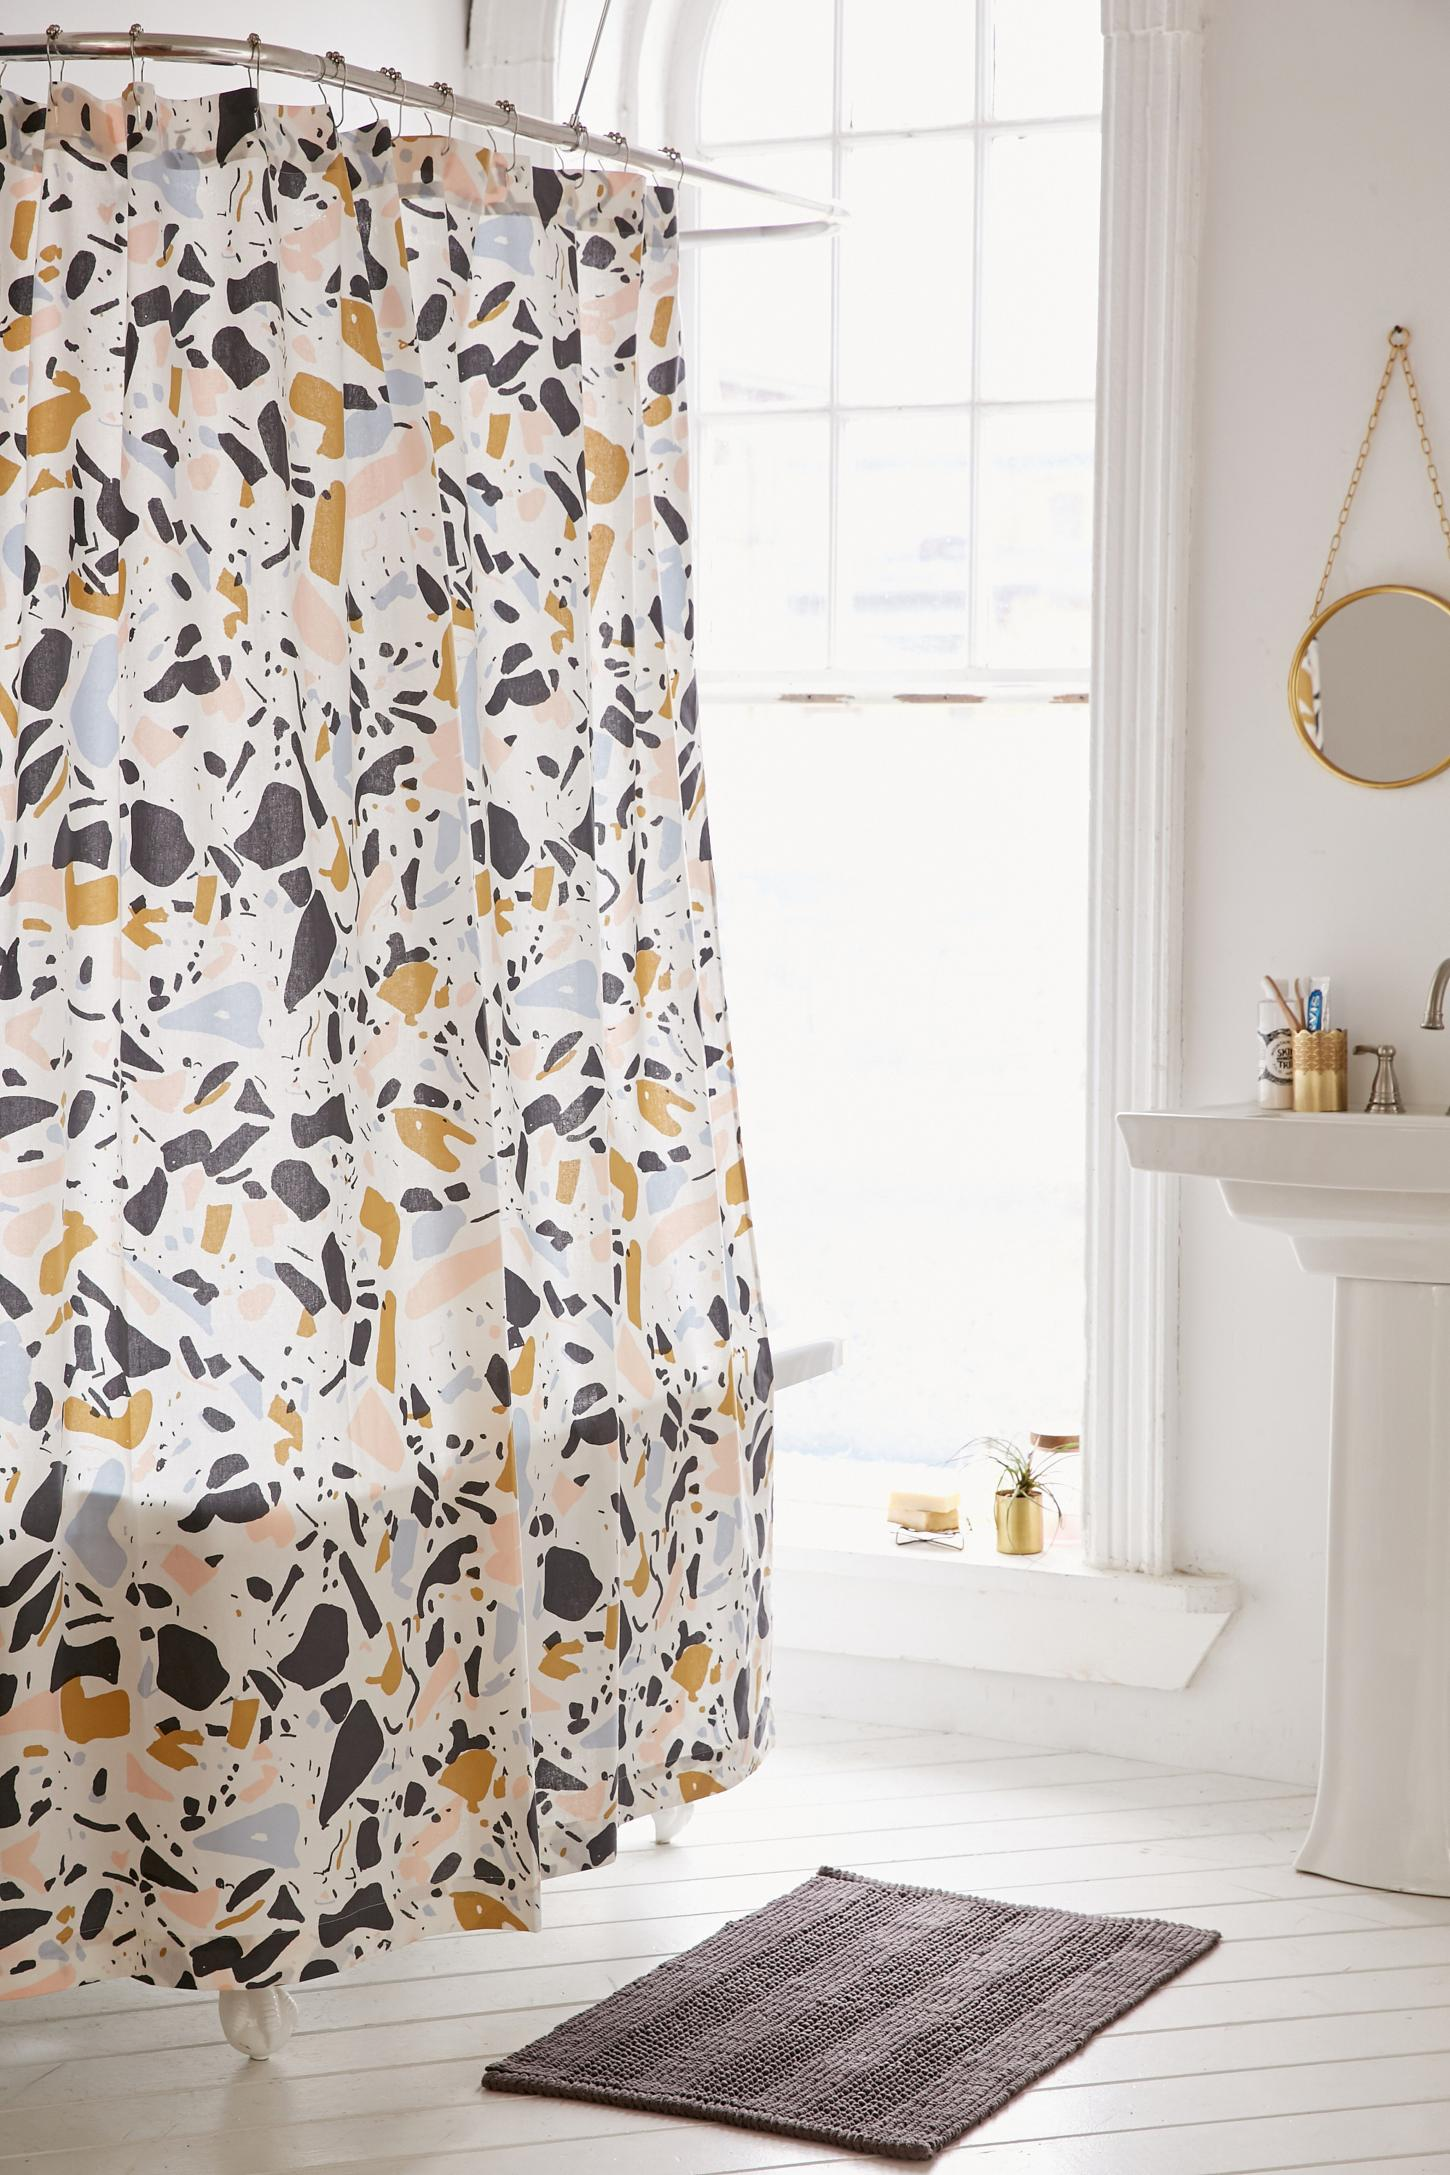 A budget (and commitment) friendly option, this terrazzo print shower curtain from Urban Outfitters will bring the trend to the bathroom with ease. - Image via Pinterest